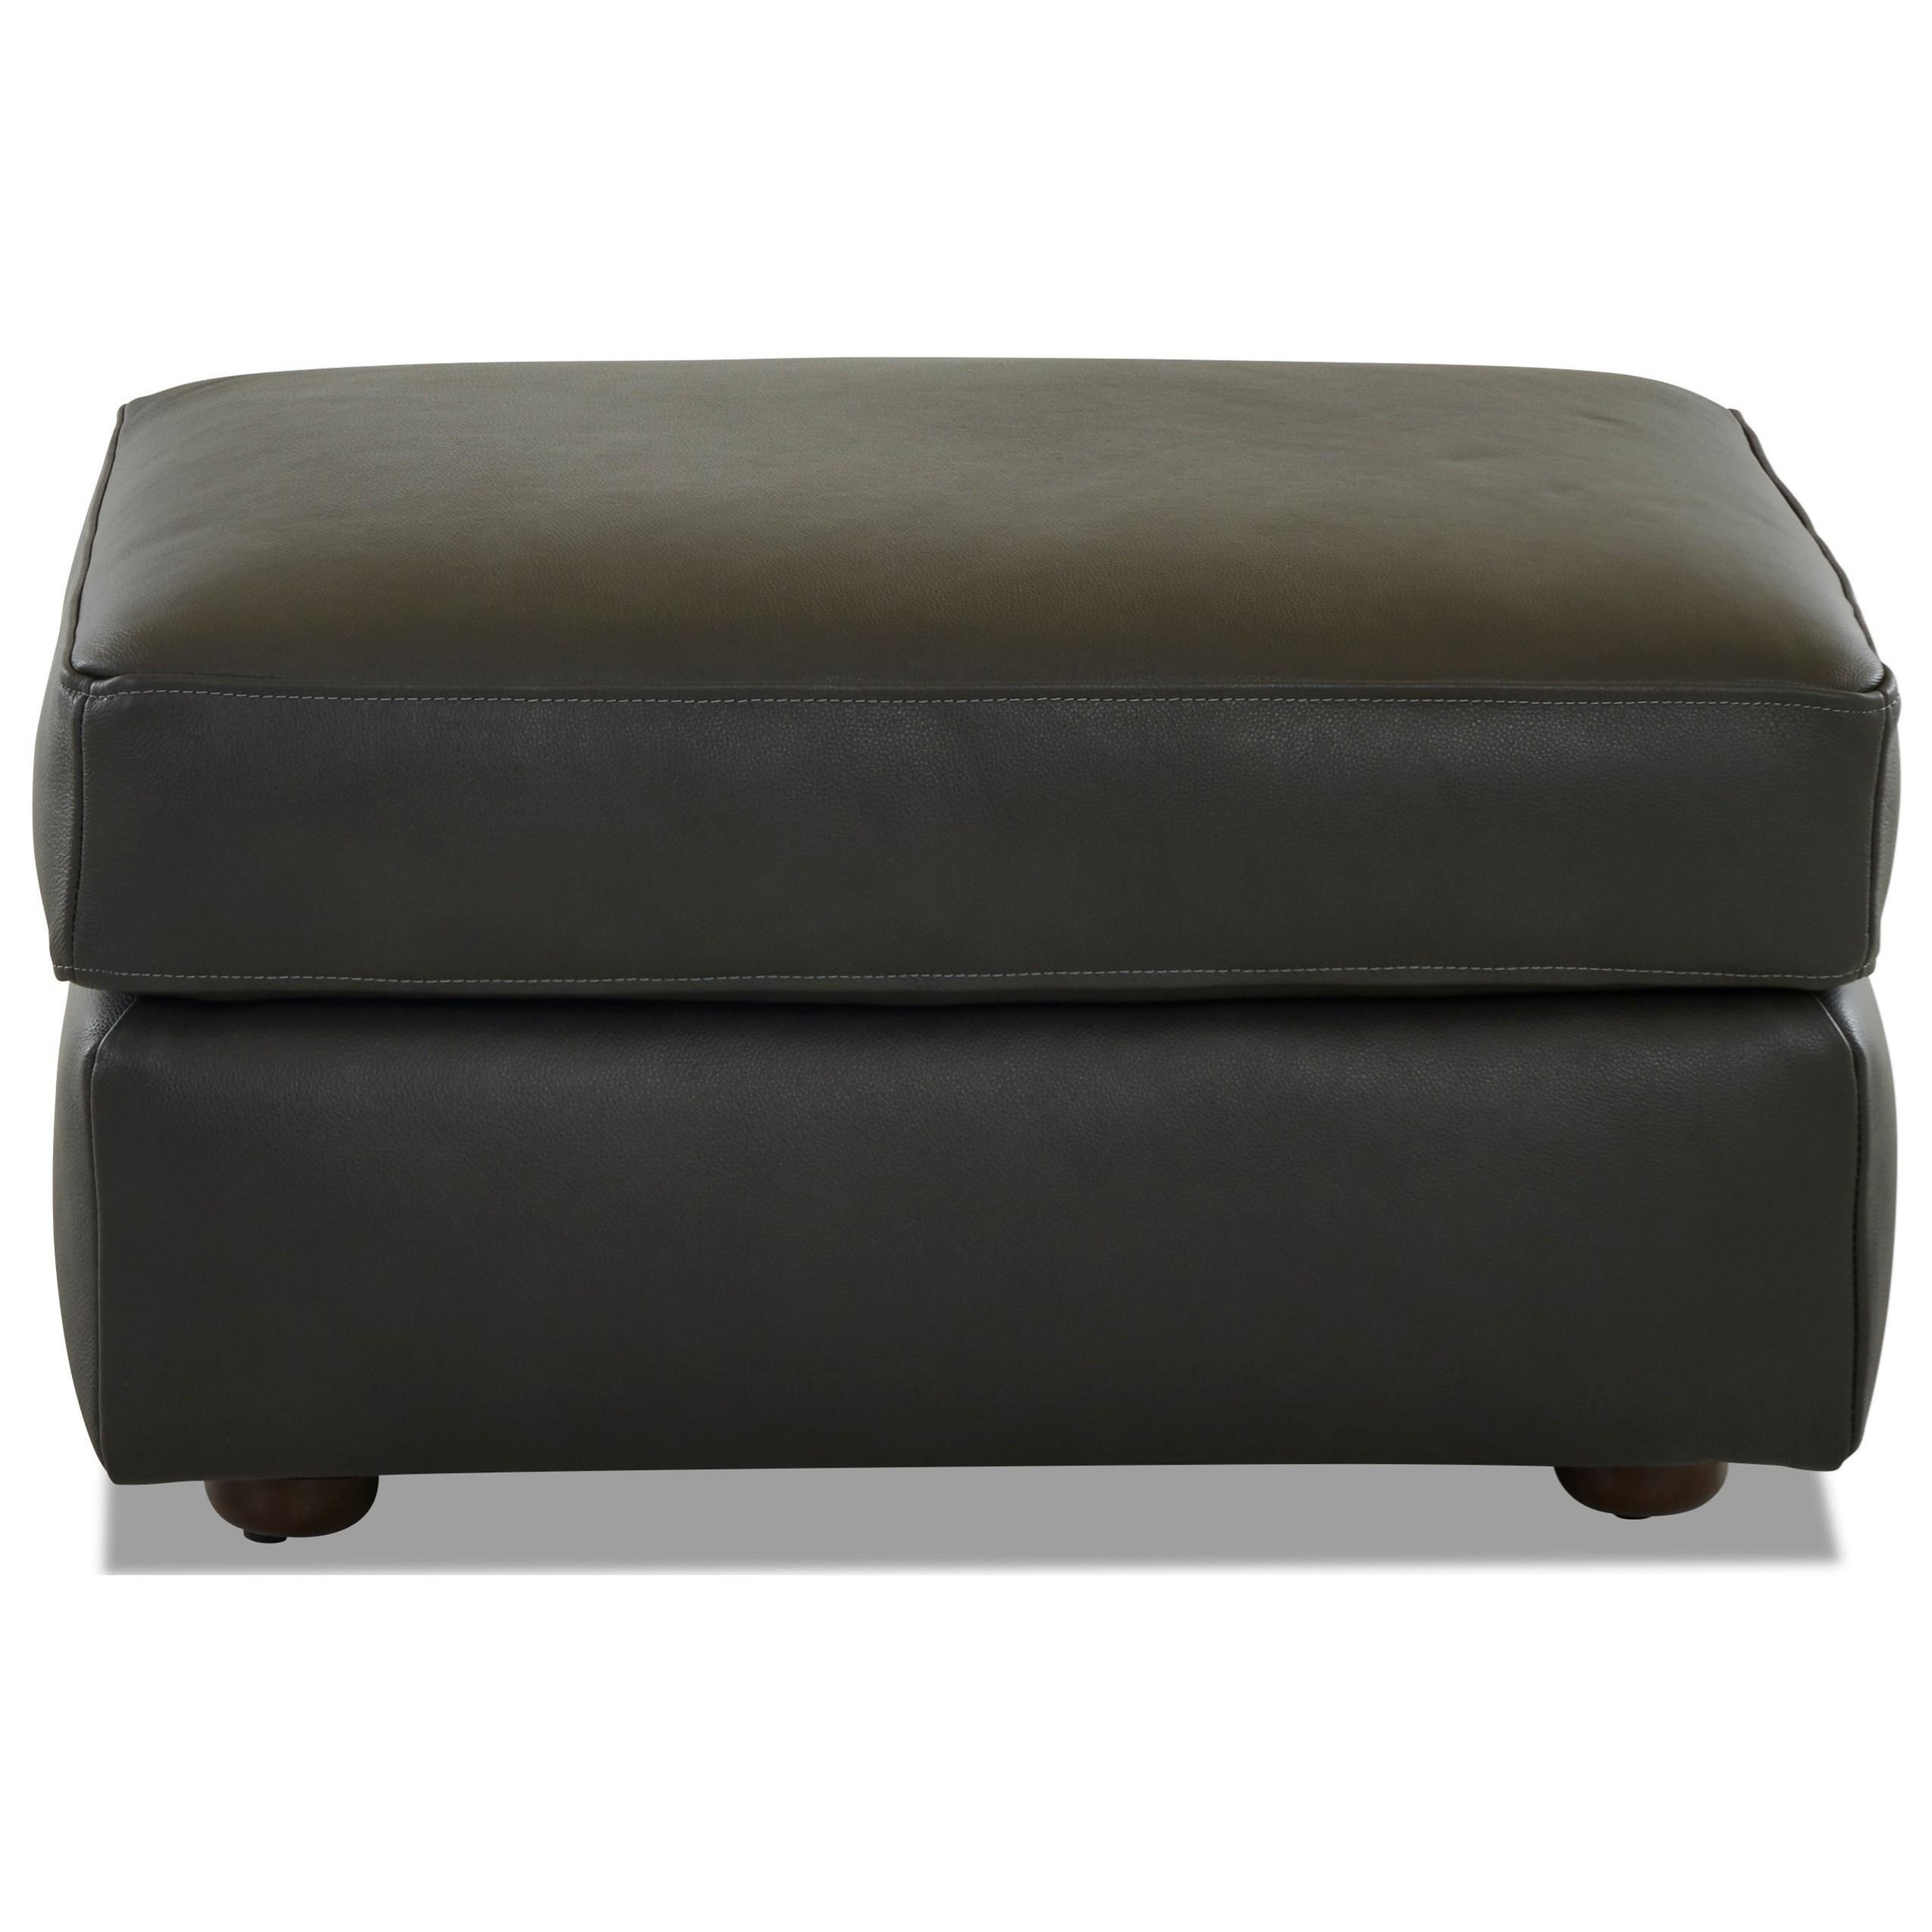 Gus Ottoman by Klaussner at Northeast Factory Direct